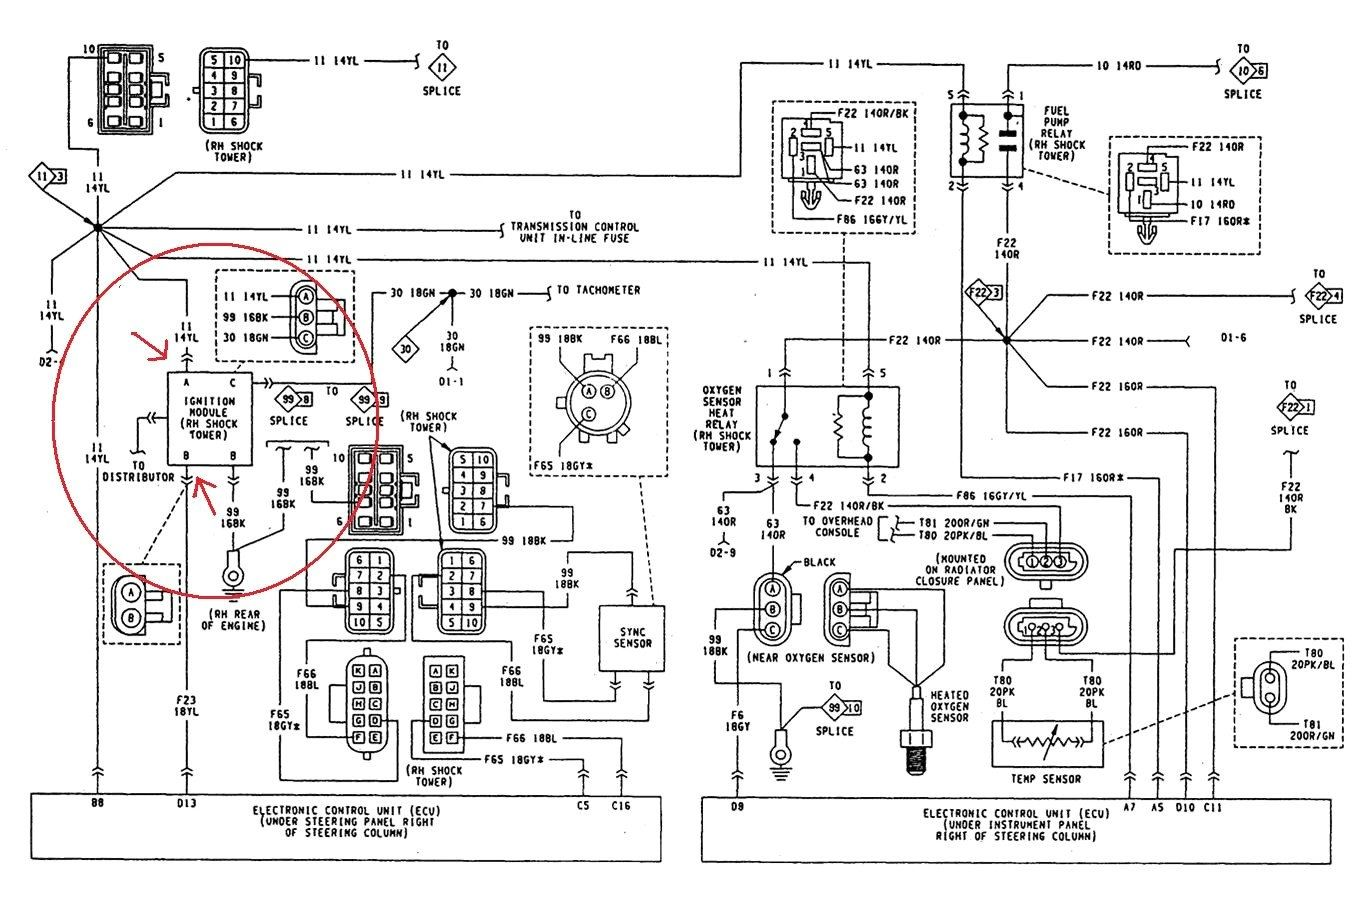 90 jeep yj wiring diagram wiring diagram sheet 90 jeep yj vacuum diagram wiring schematic wiring [ 1352 x 900 Pixel ]